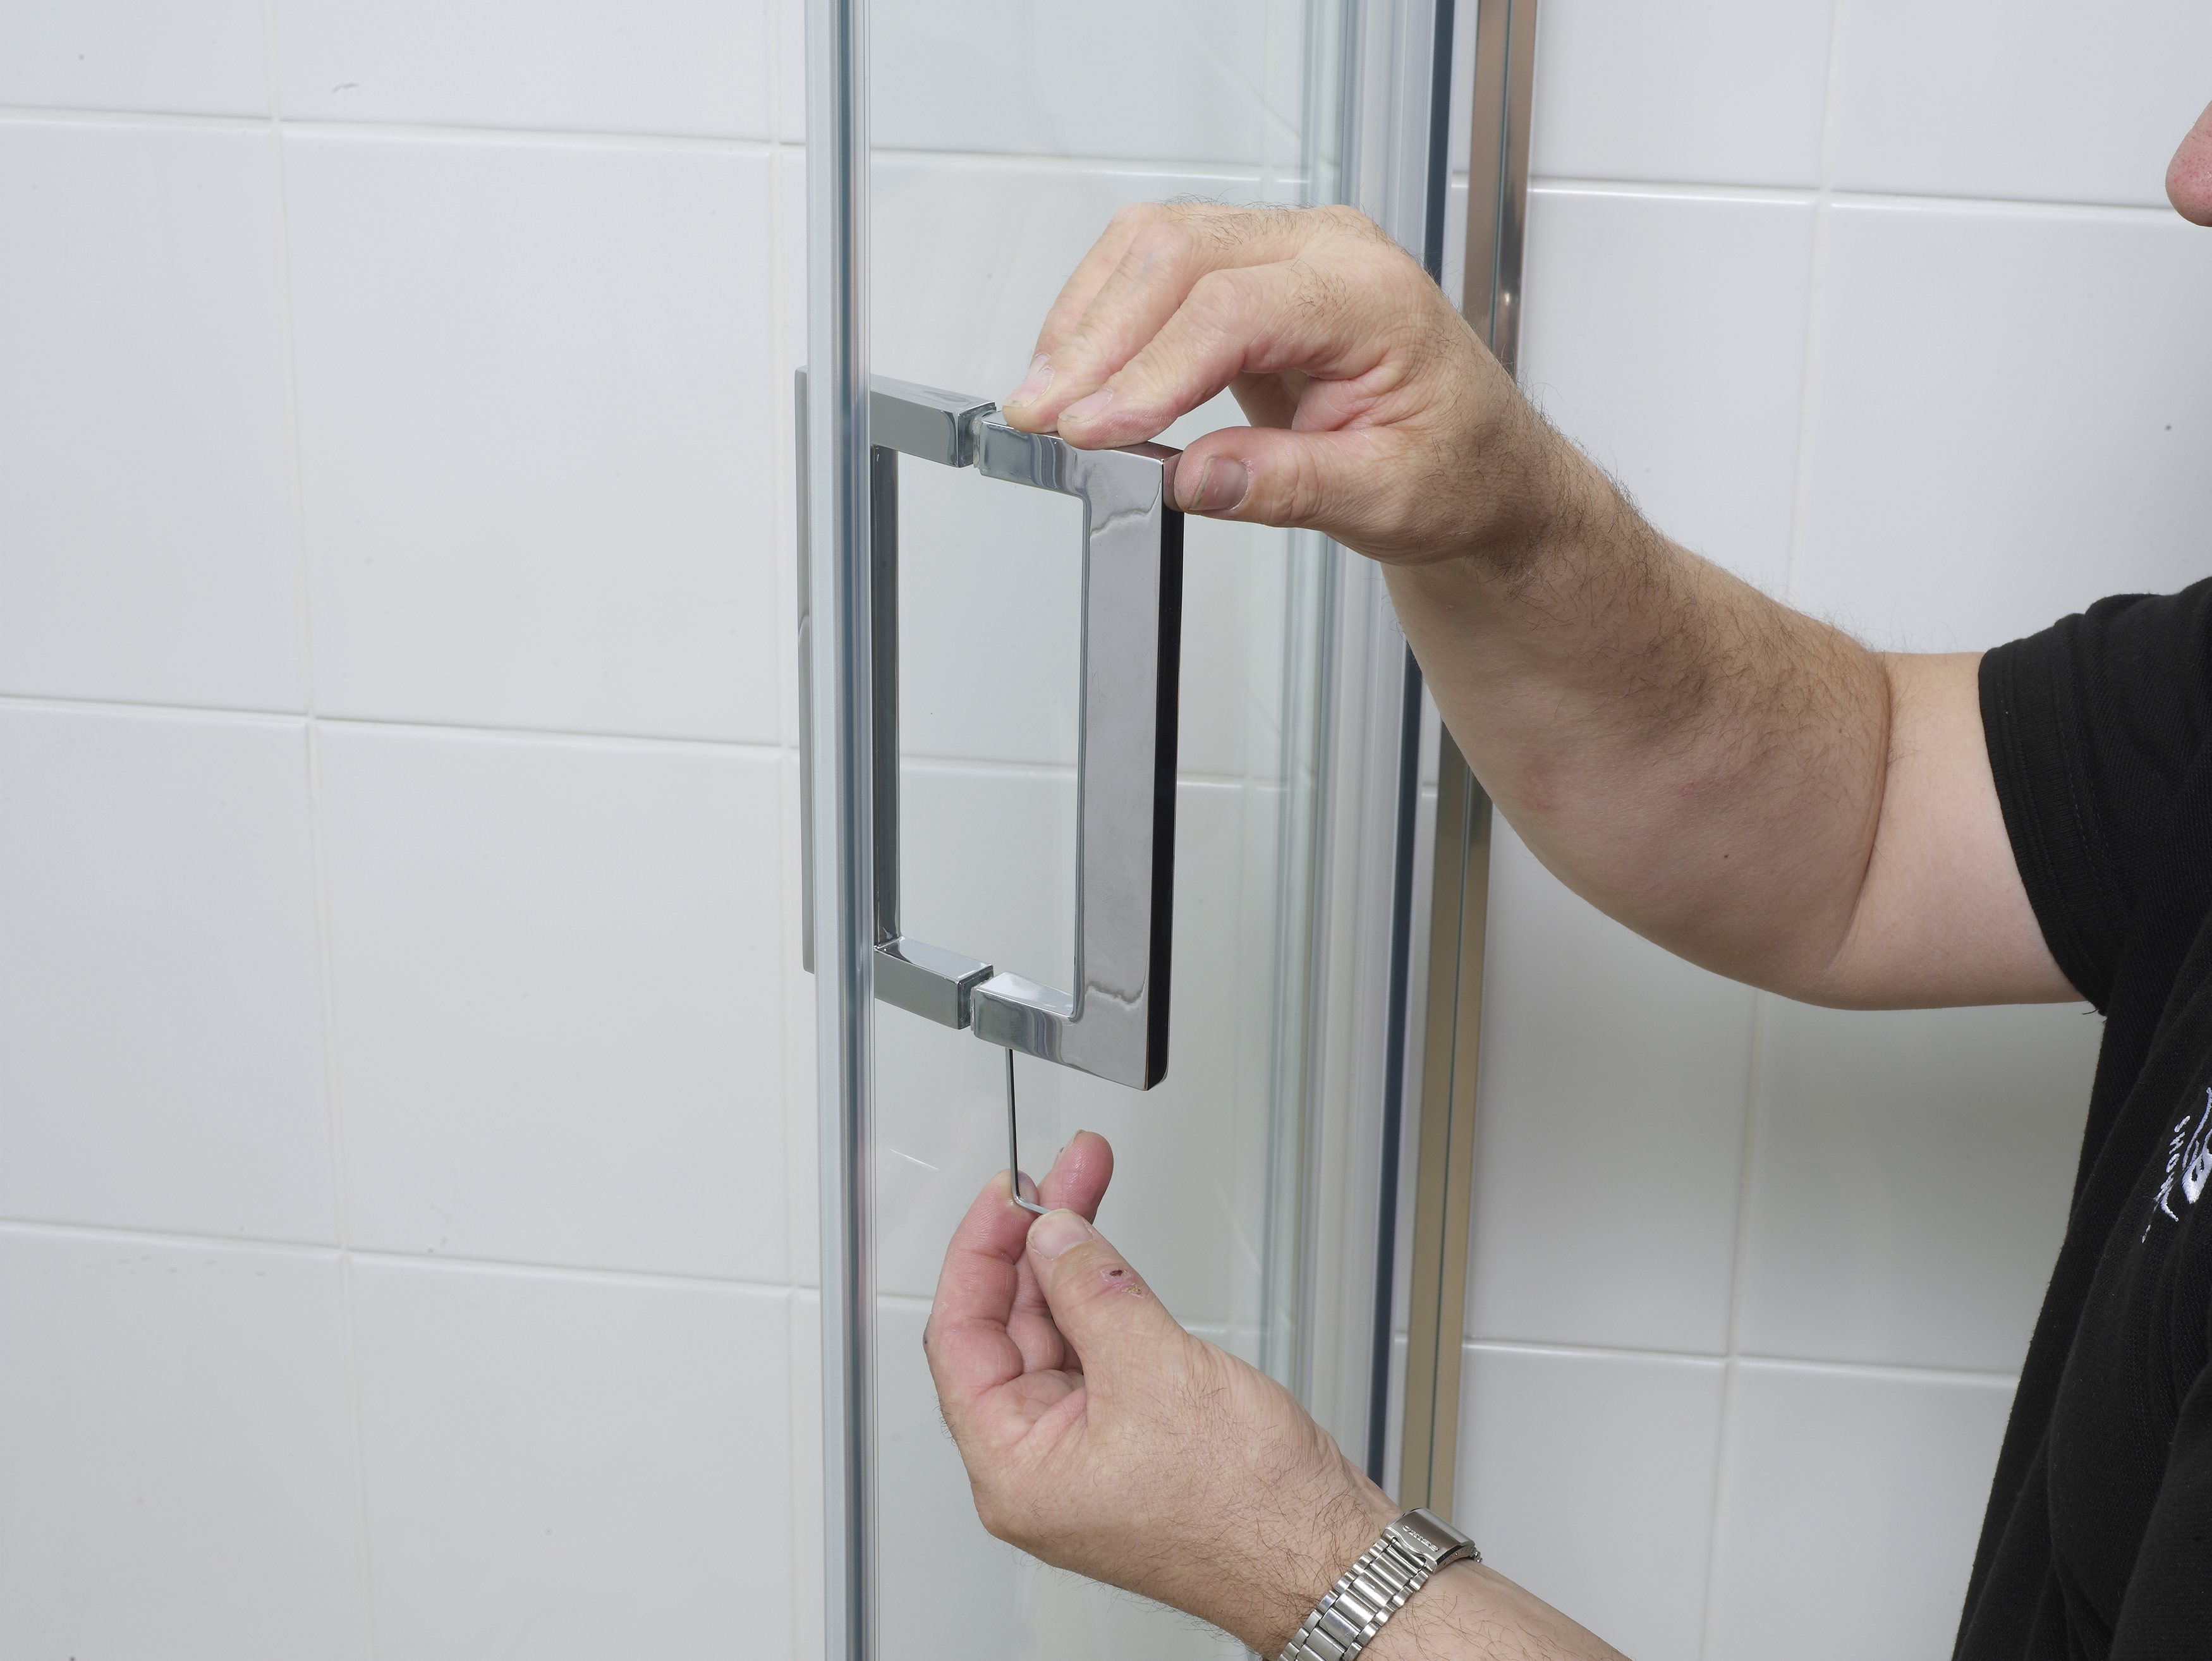 Connect the double handle assemblies to both sliding doors